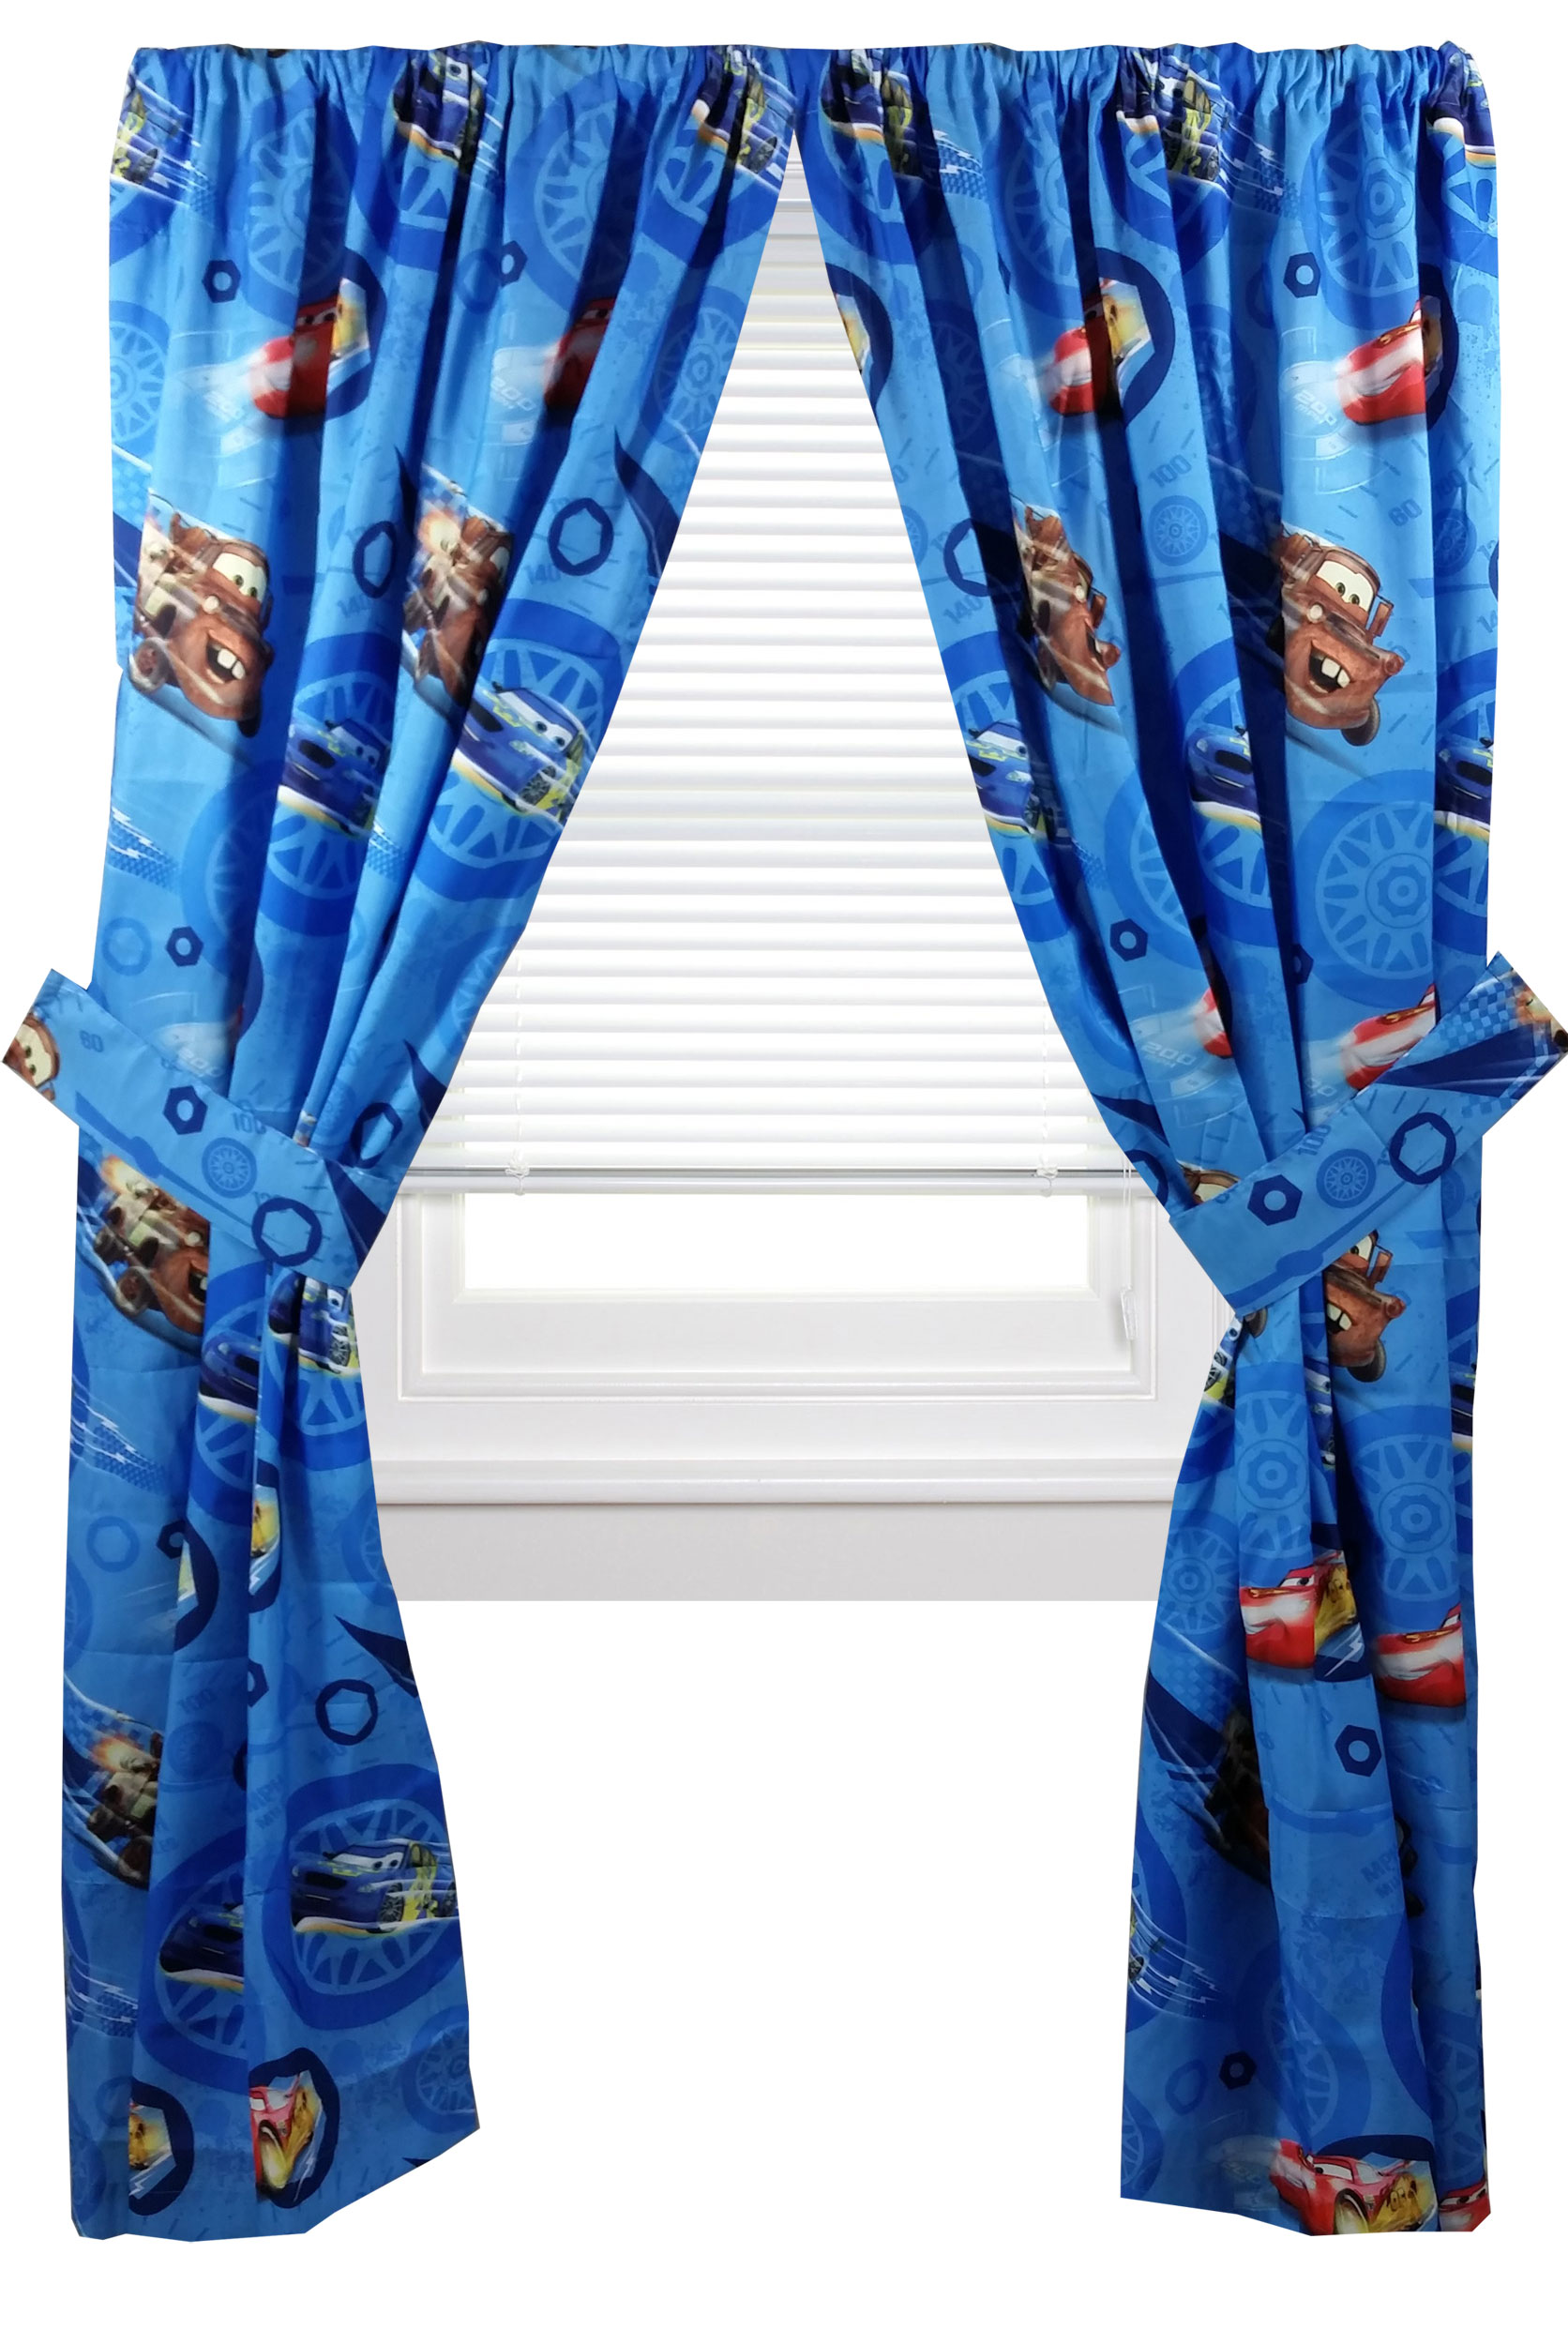 Disney Cars Window Curtains